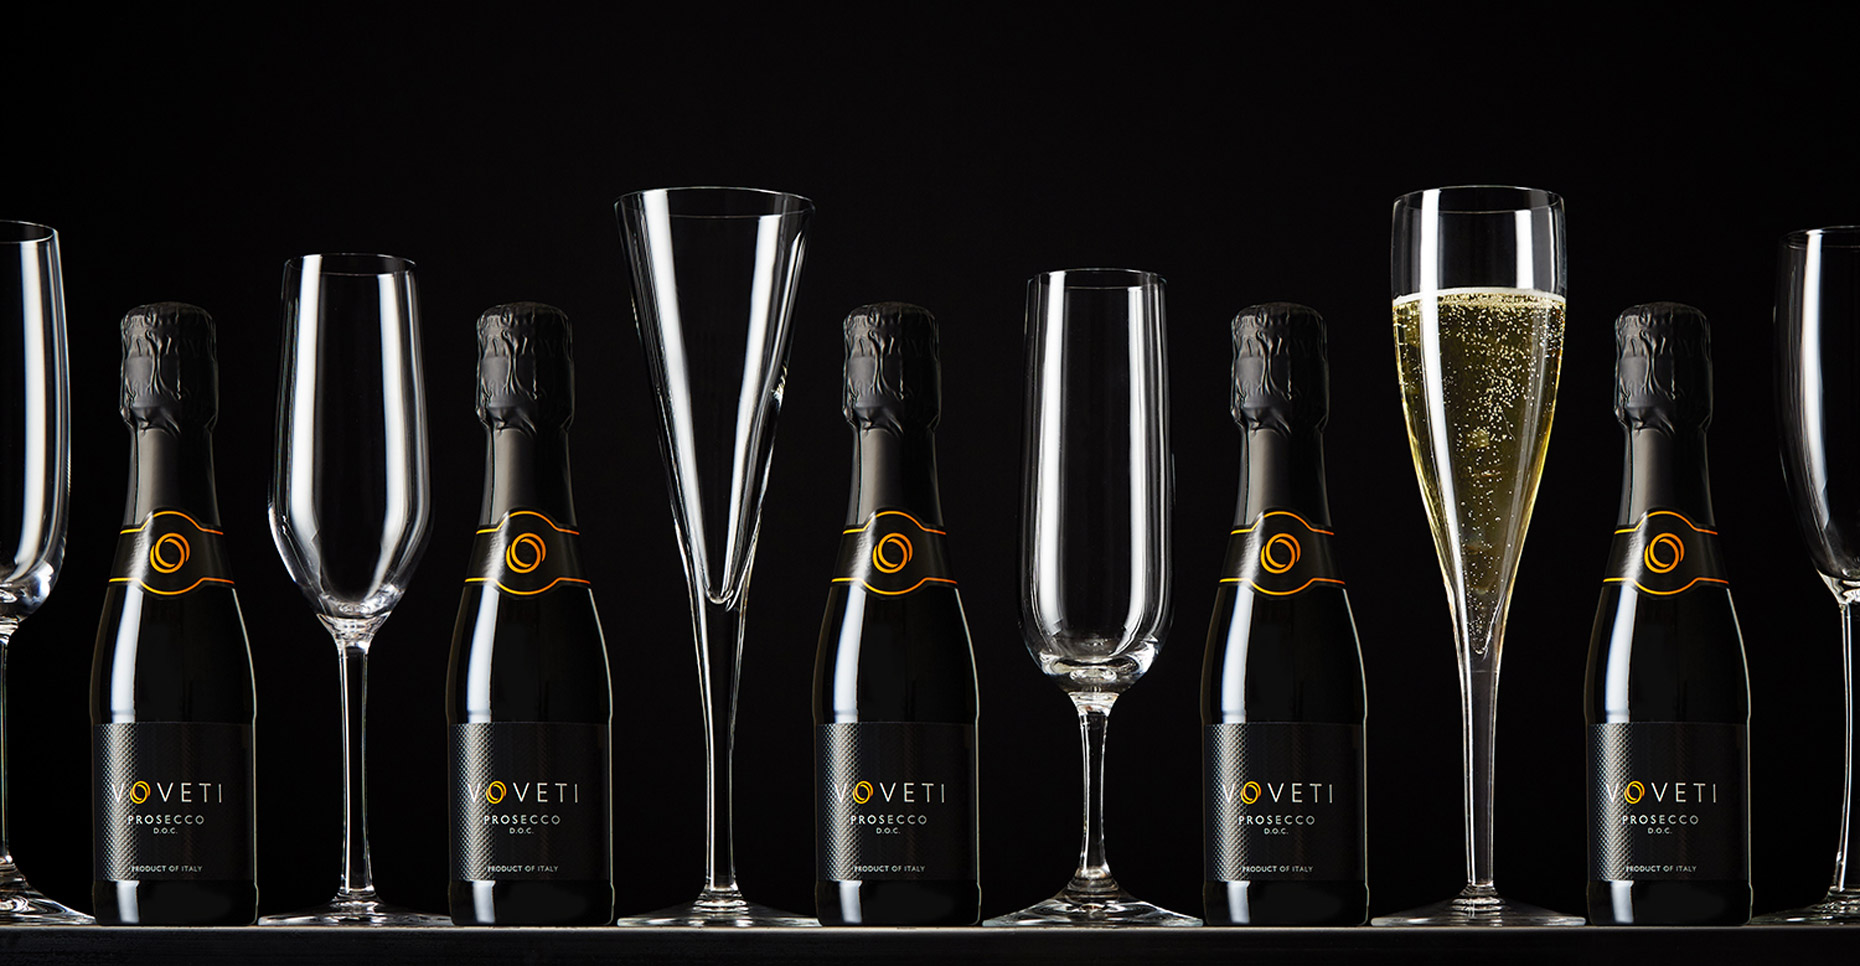 AlanCampbellPhotography, Volveti wine line up of prosecco